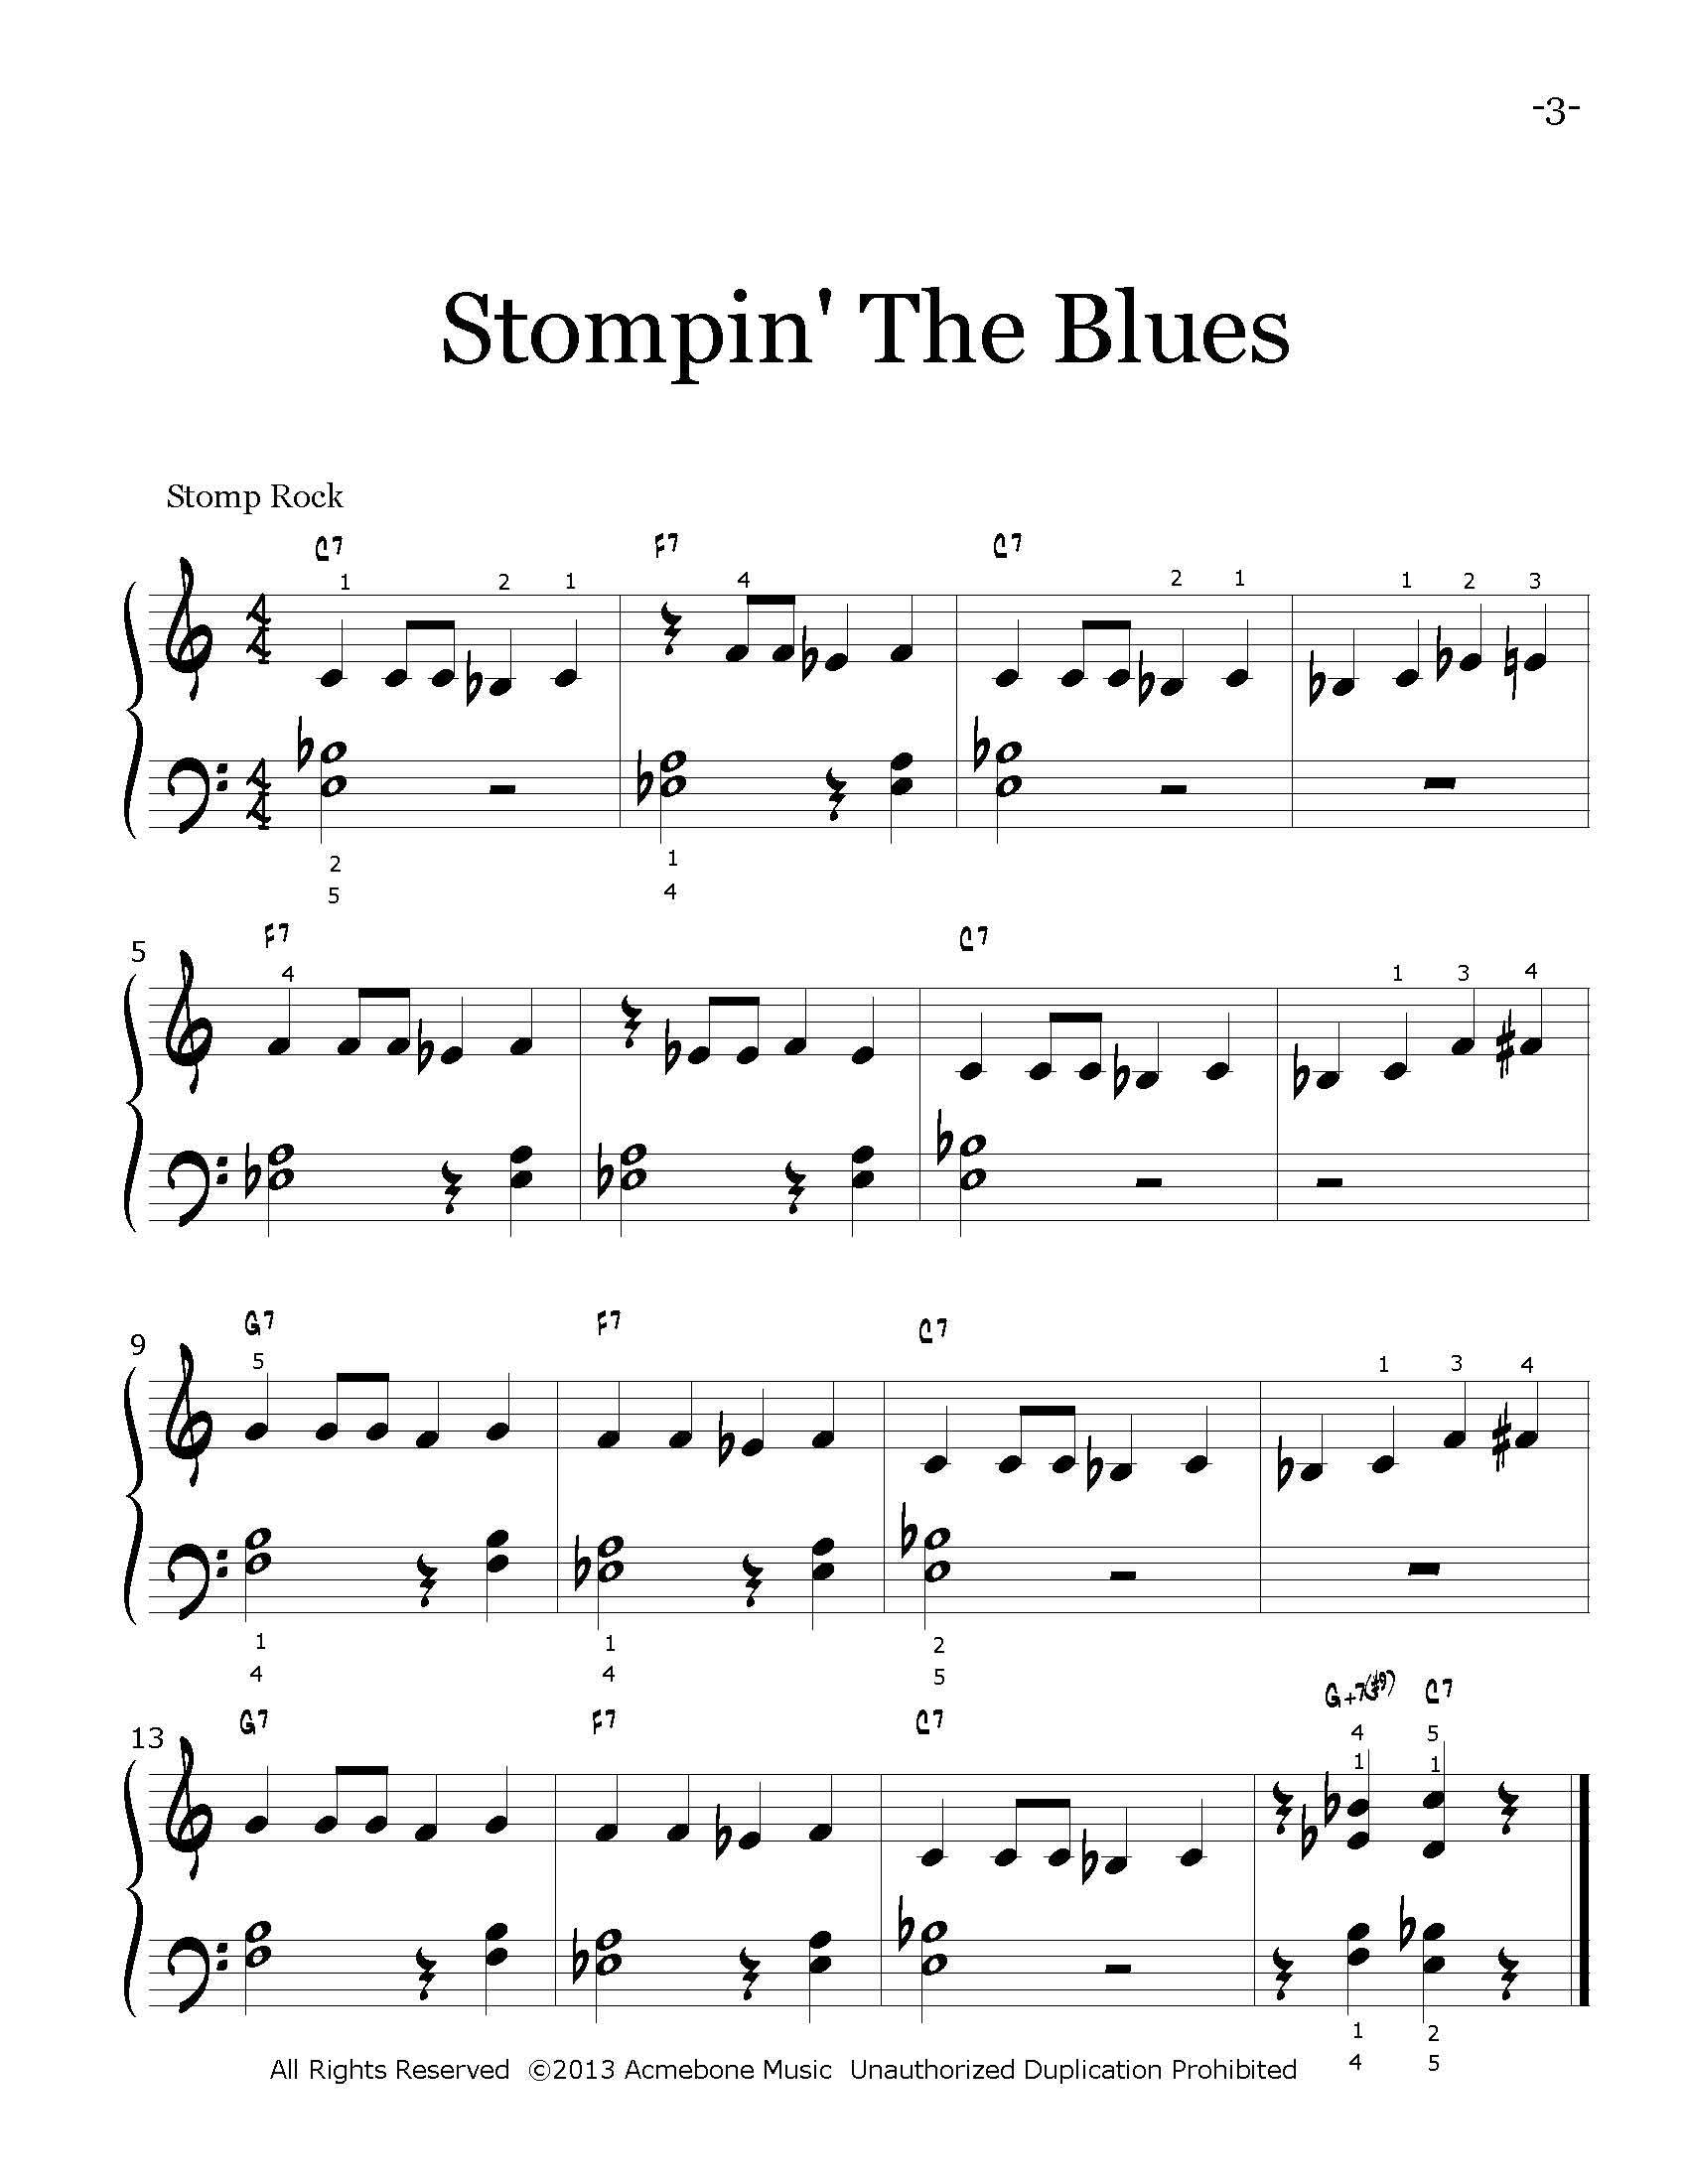 Stompin' The Blues